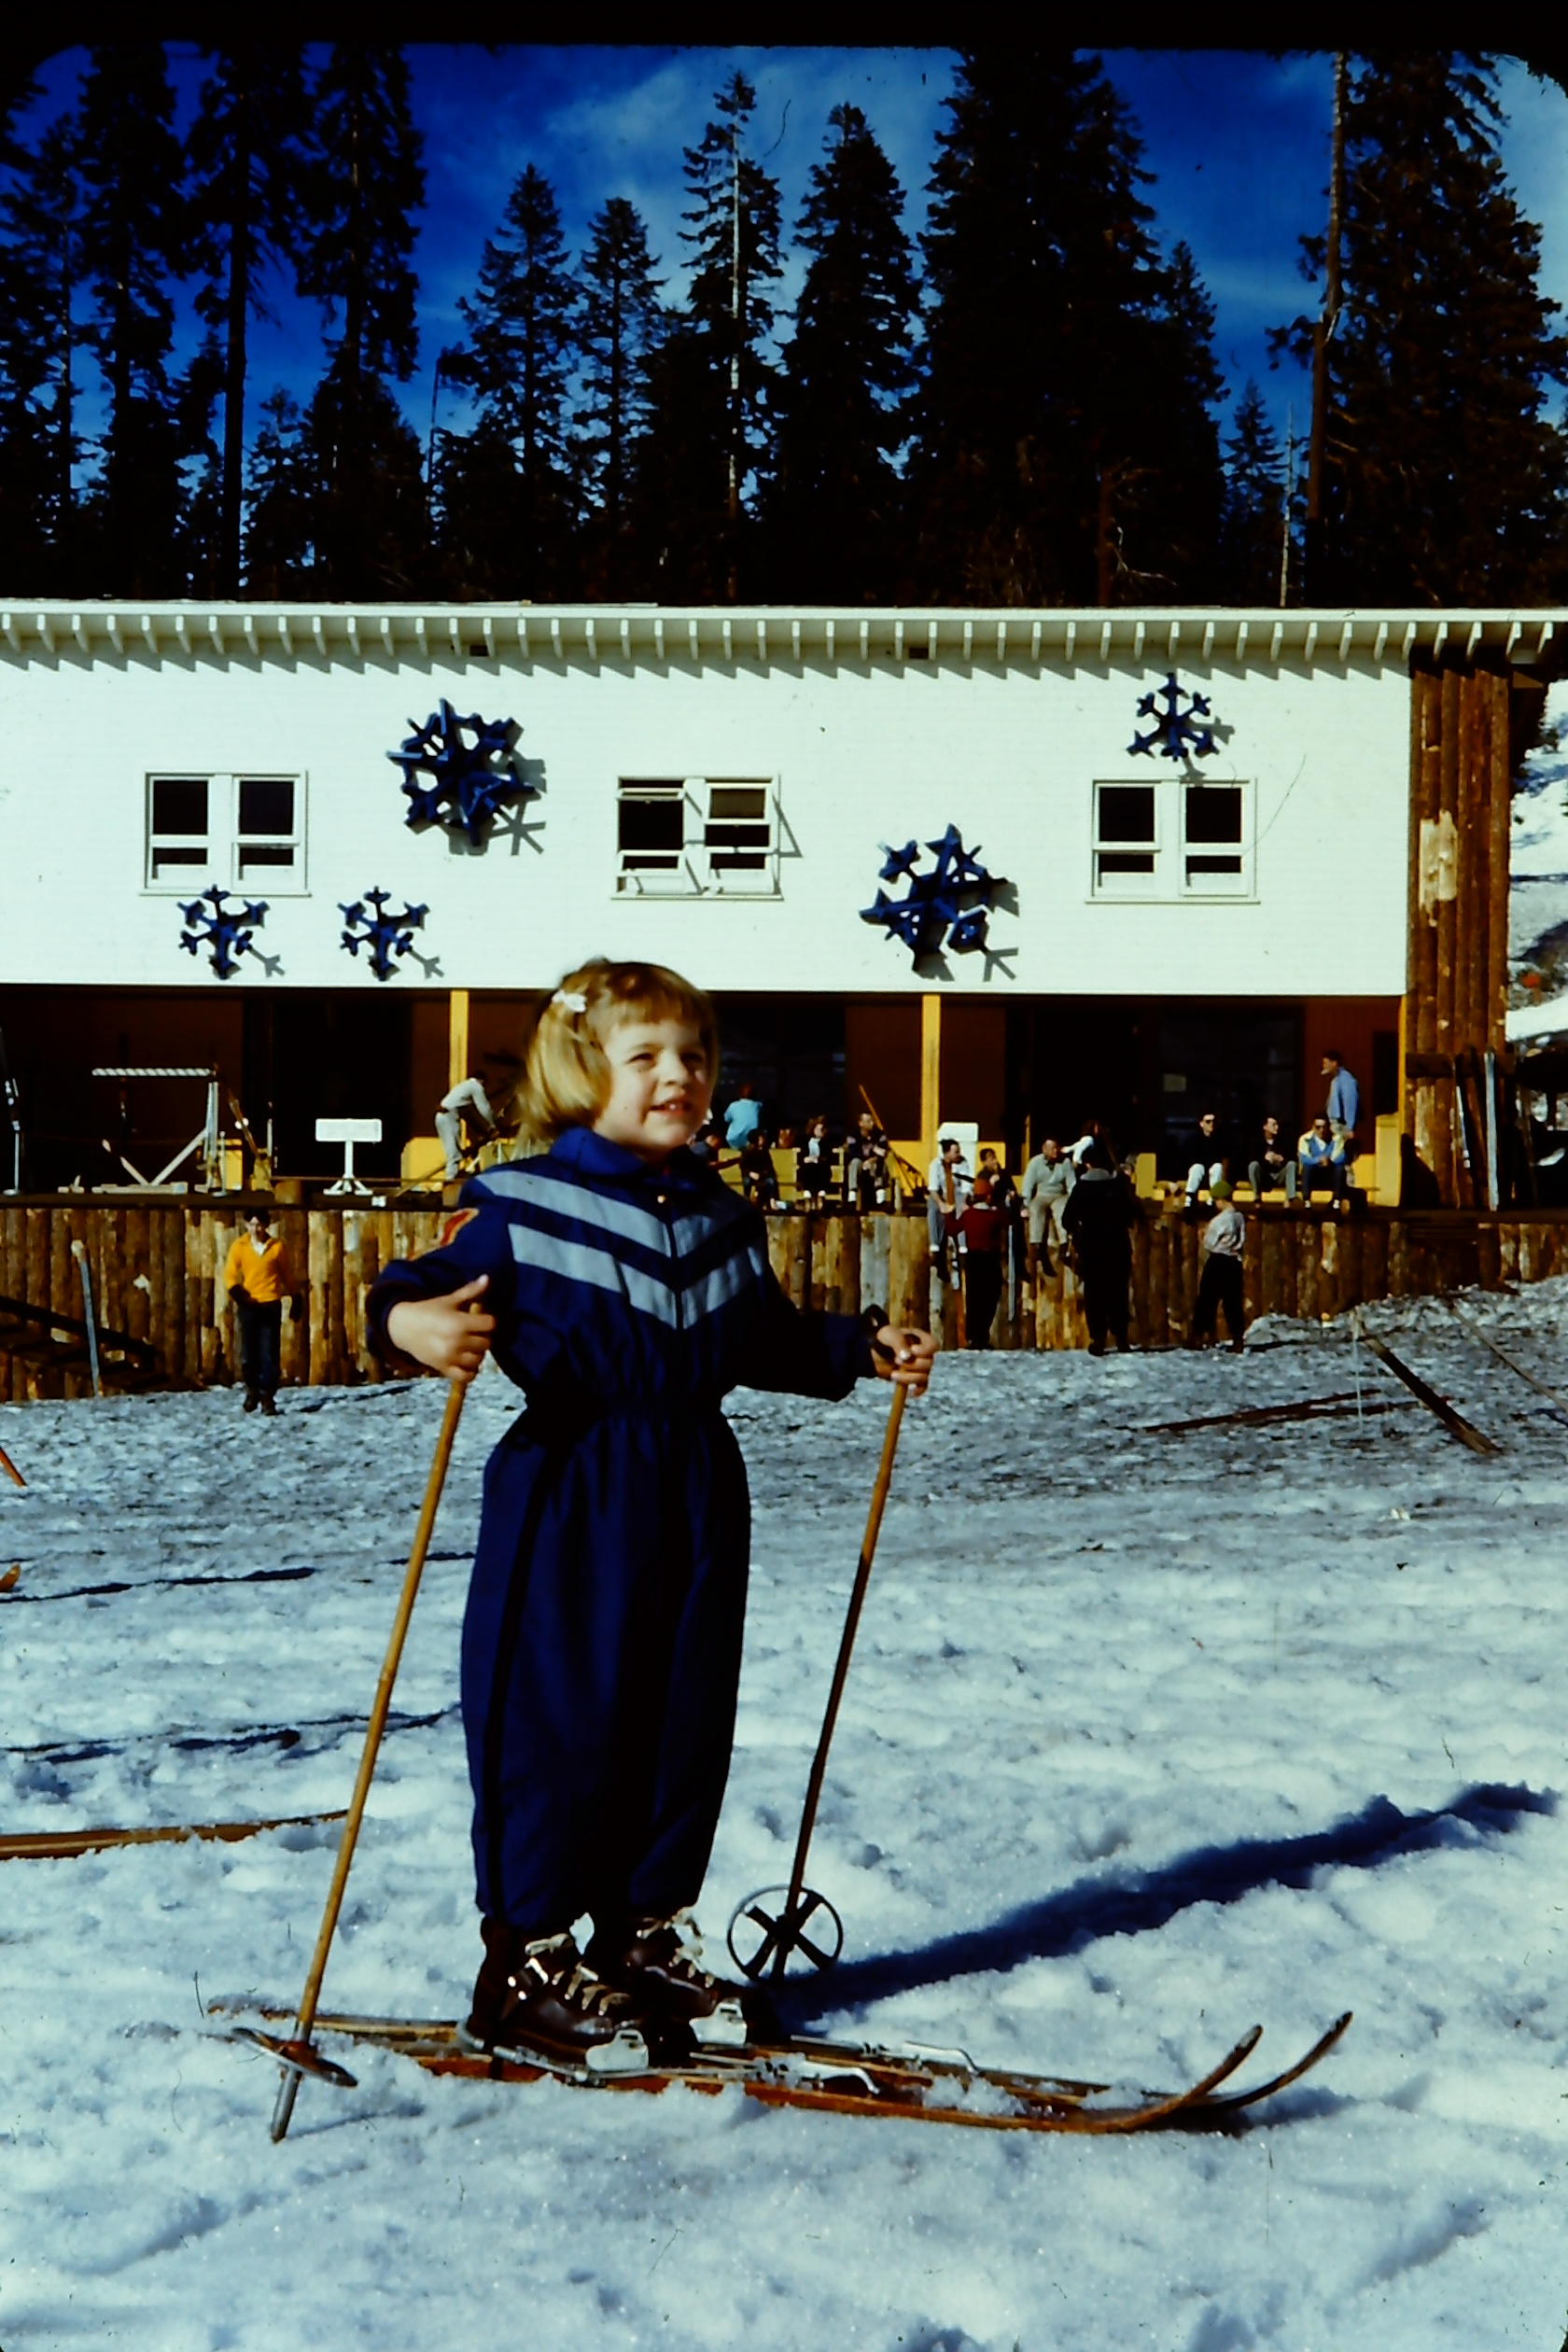 Me and Snowflakes....we go way back.  Badger Pass at Yosemite sometime around 1956.  I still remember the big 3-D snowflakes on the front of the lodge.